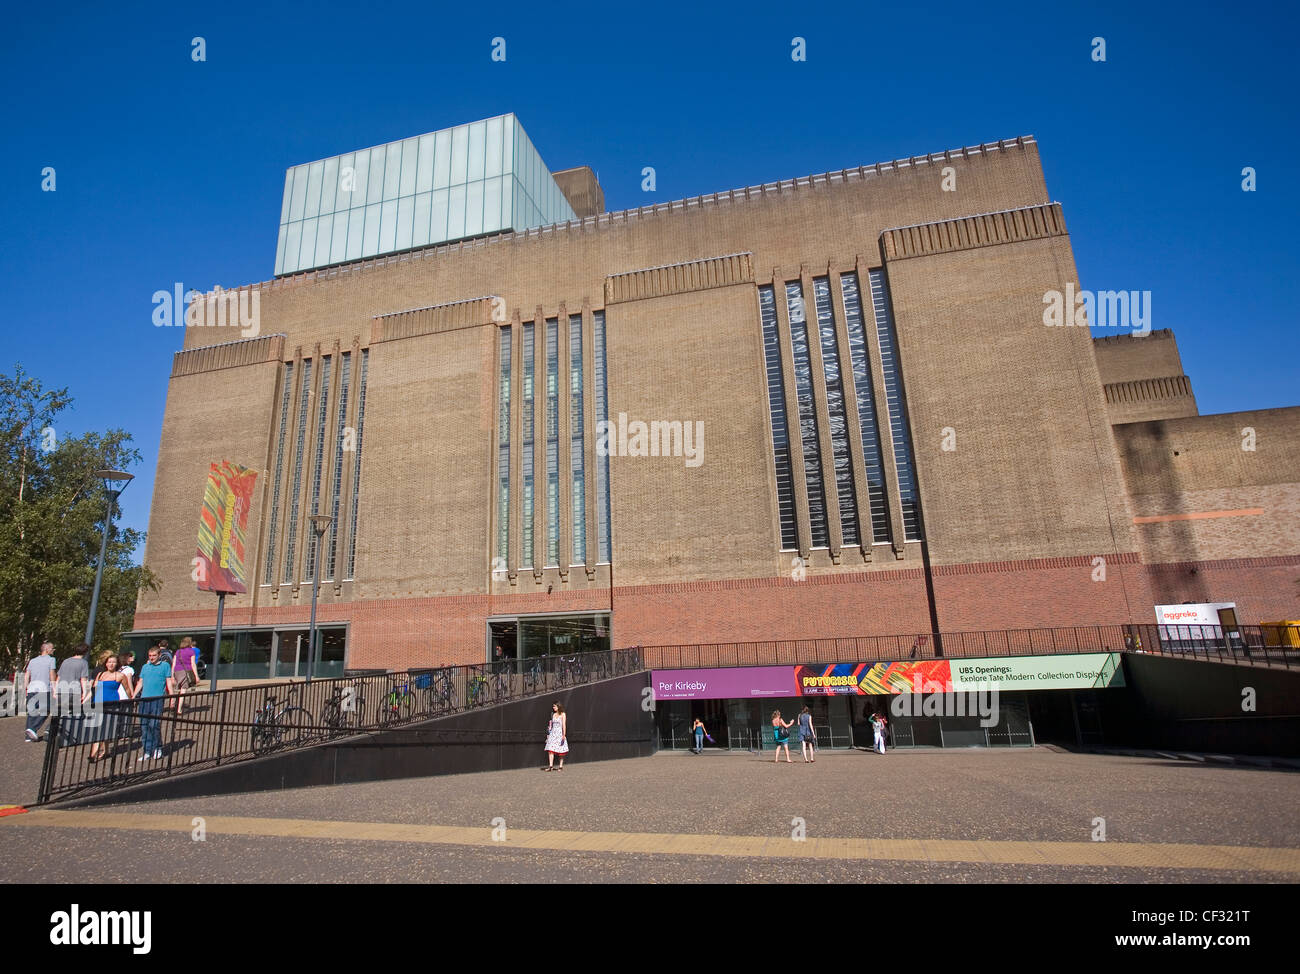 The Tate Modern at Bankside, a venue showcasing international modern and contemporary art. - Stock Image